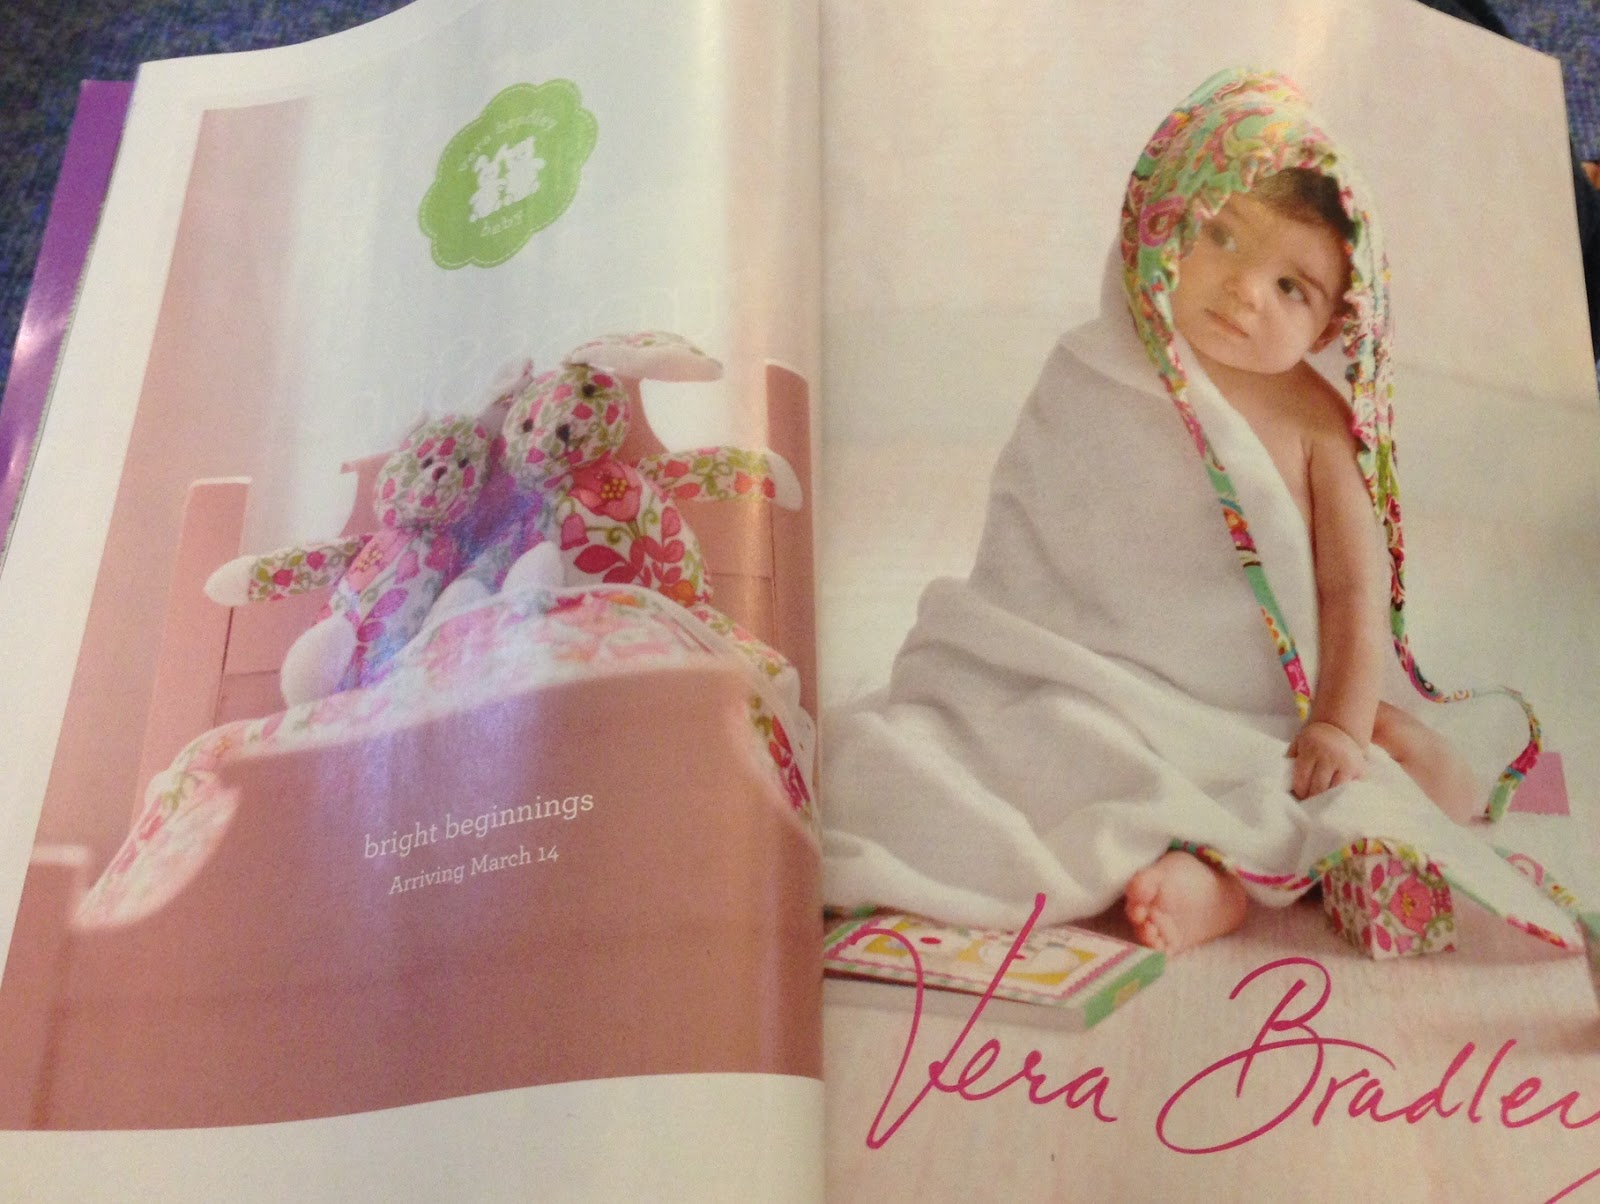 OhMyVera! A blog about all things Vera Bradley: February 2013